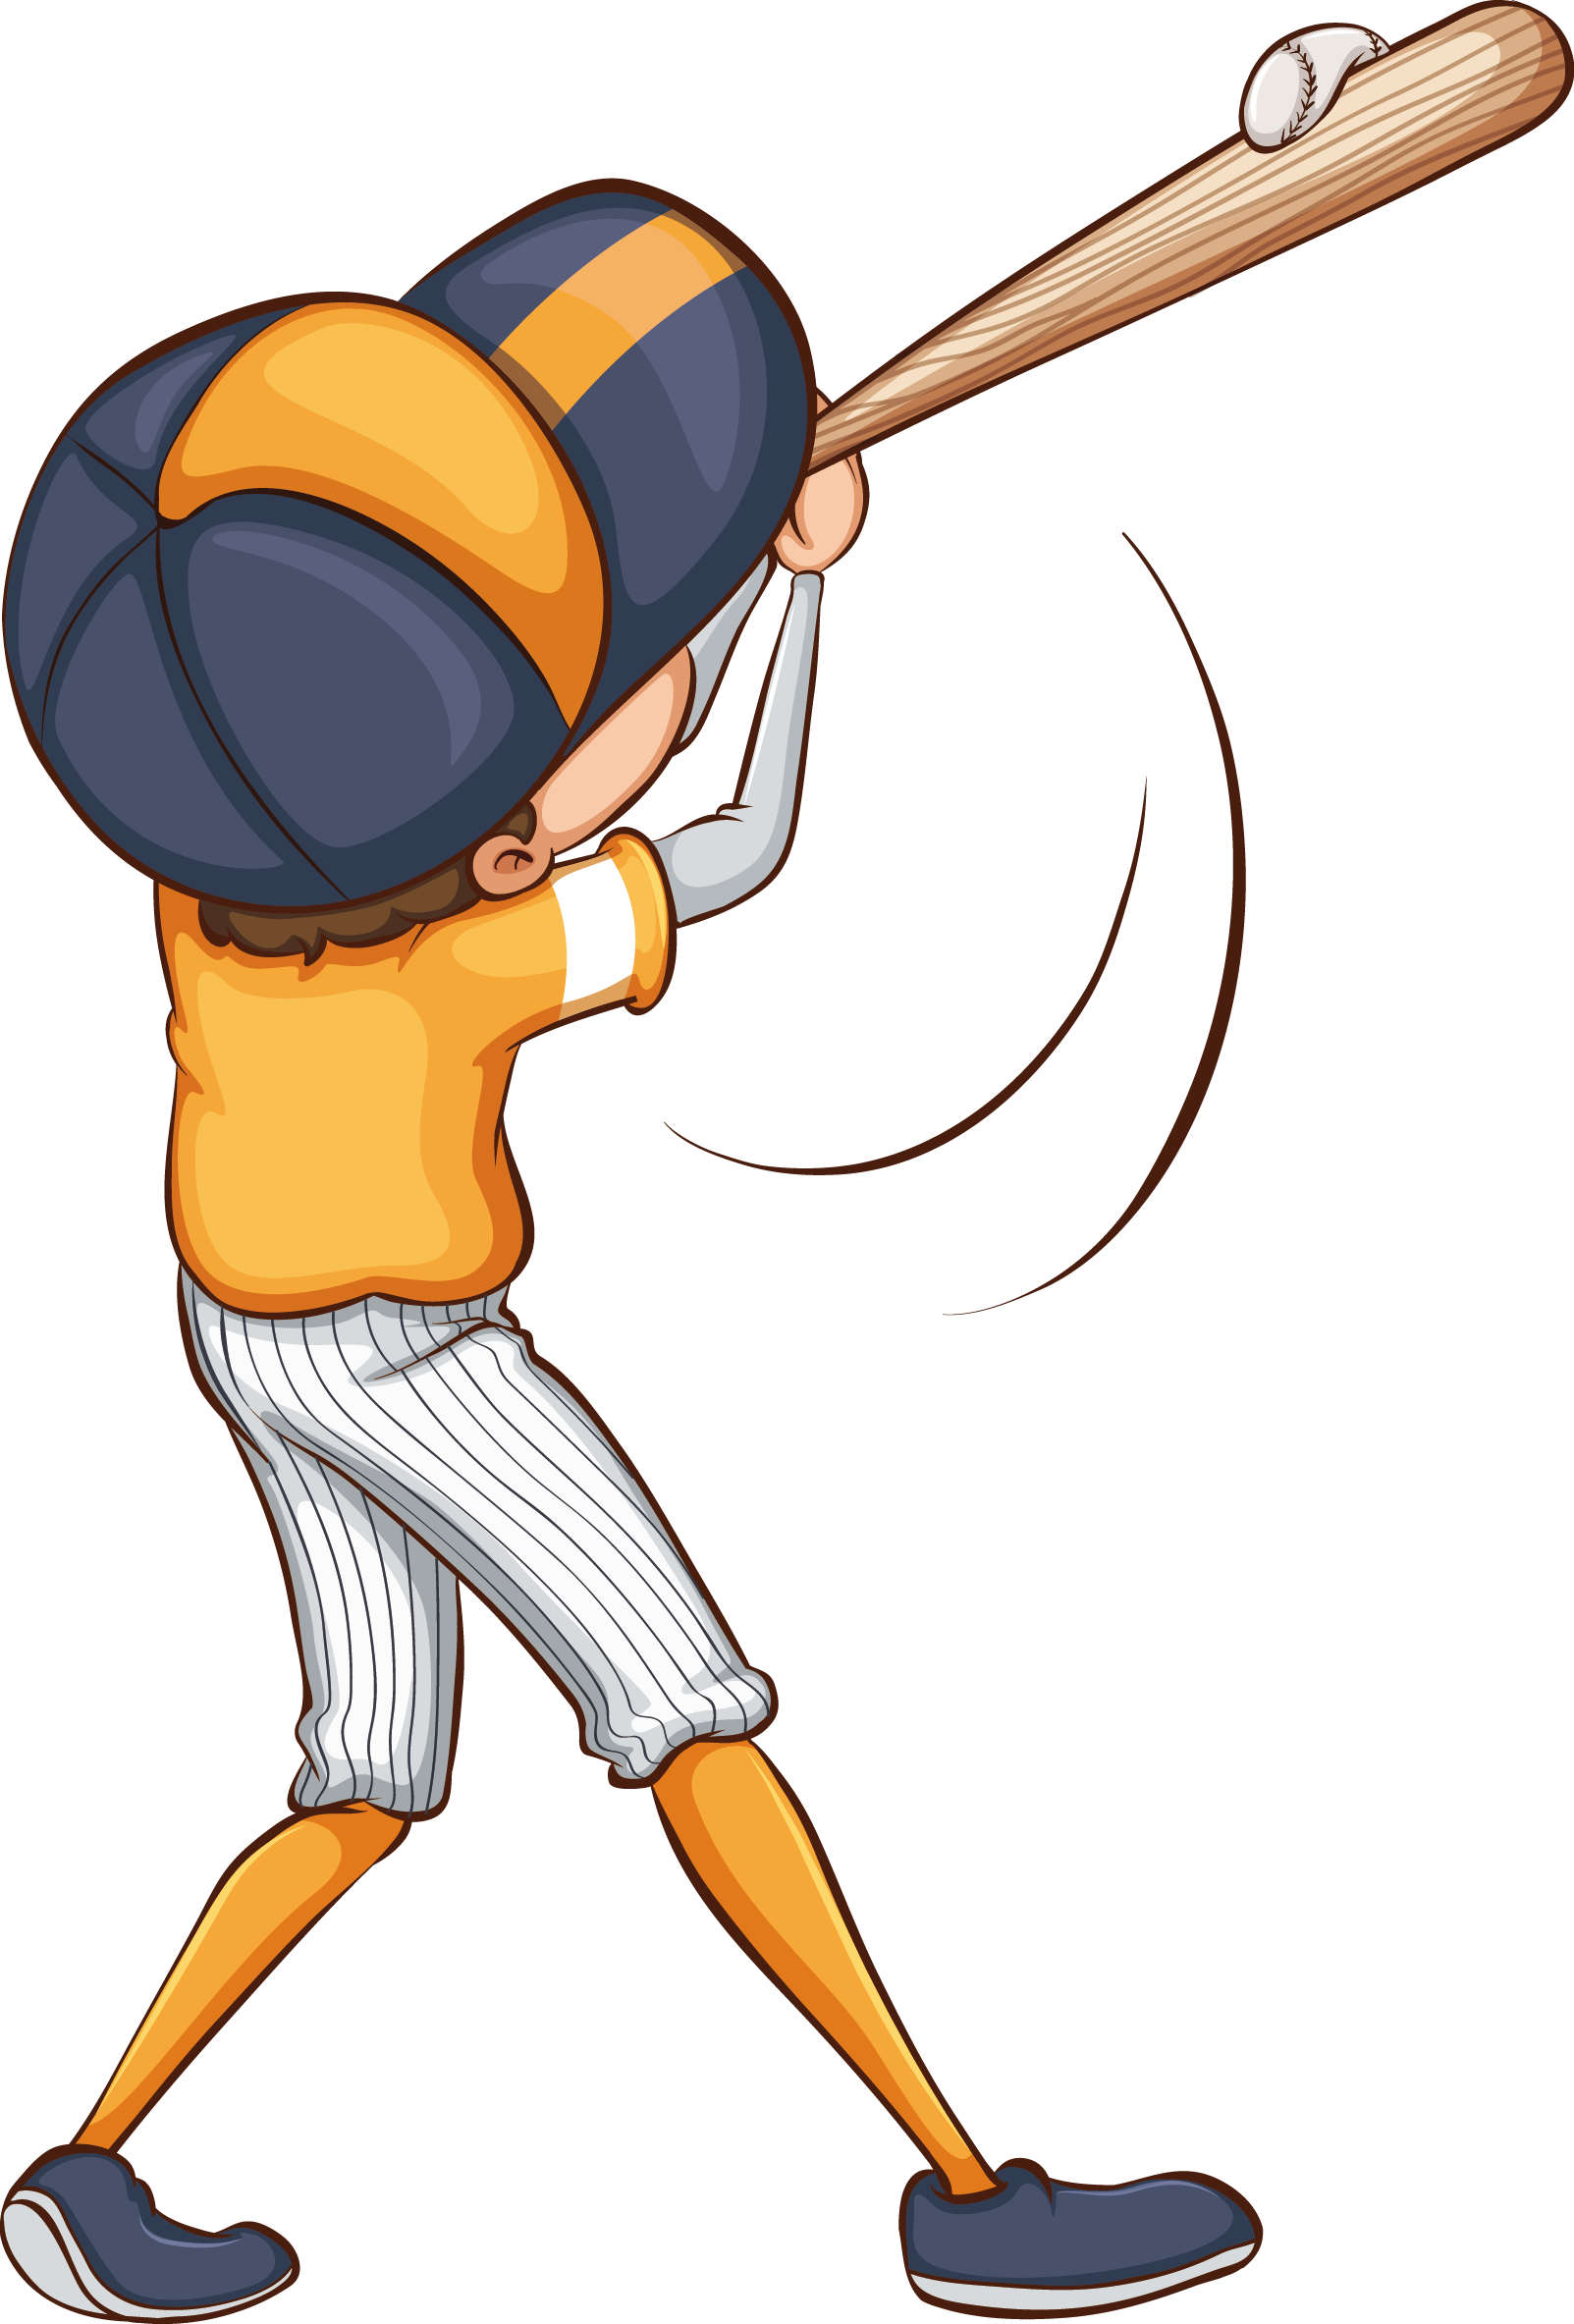 Baseball batting clipart svg free download Baseball bat Pitcher Clip art - Junior high school student baseball ... svg free download